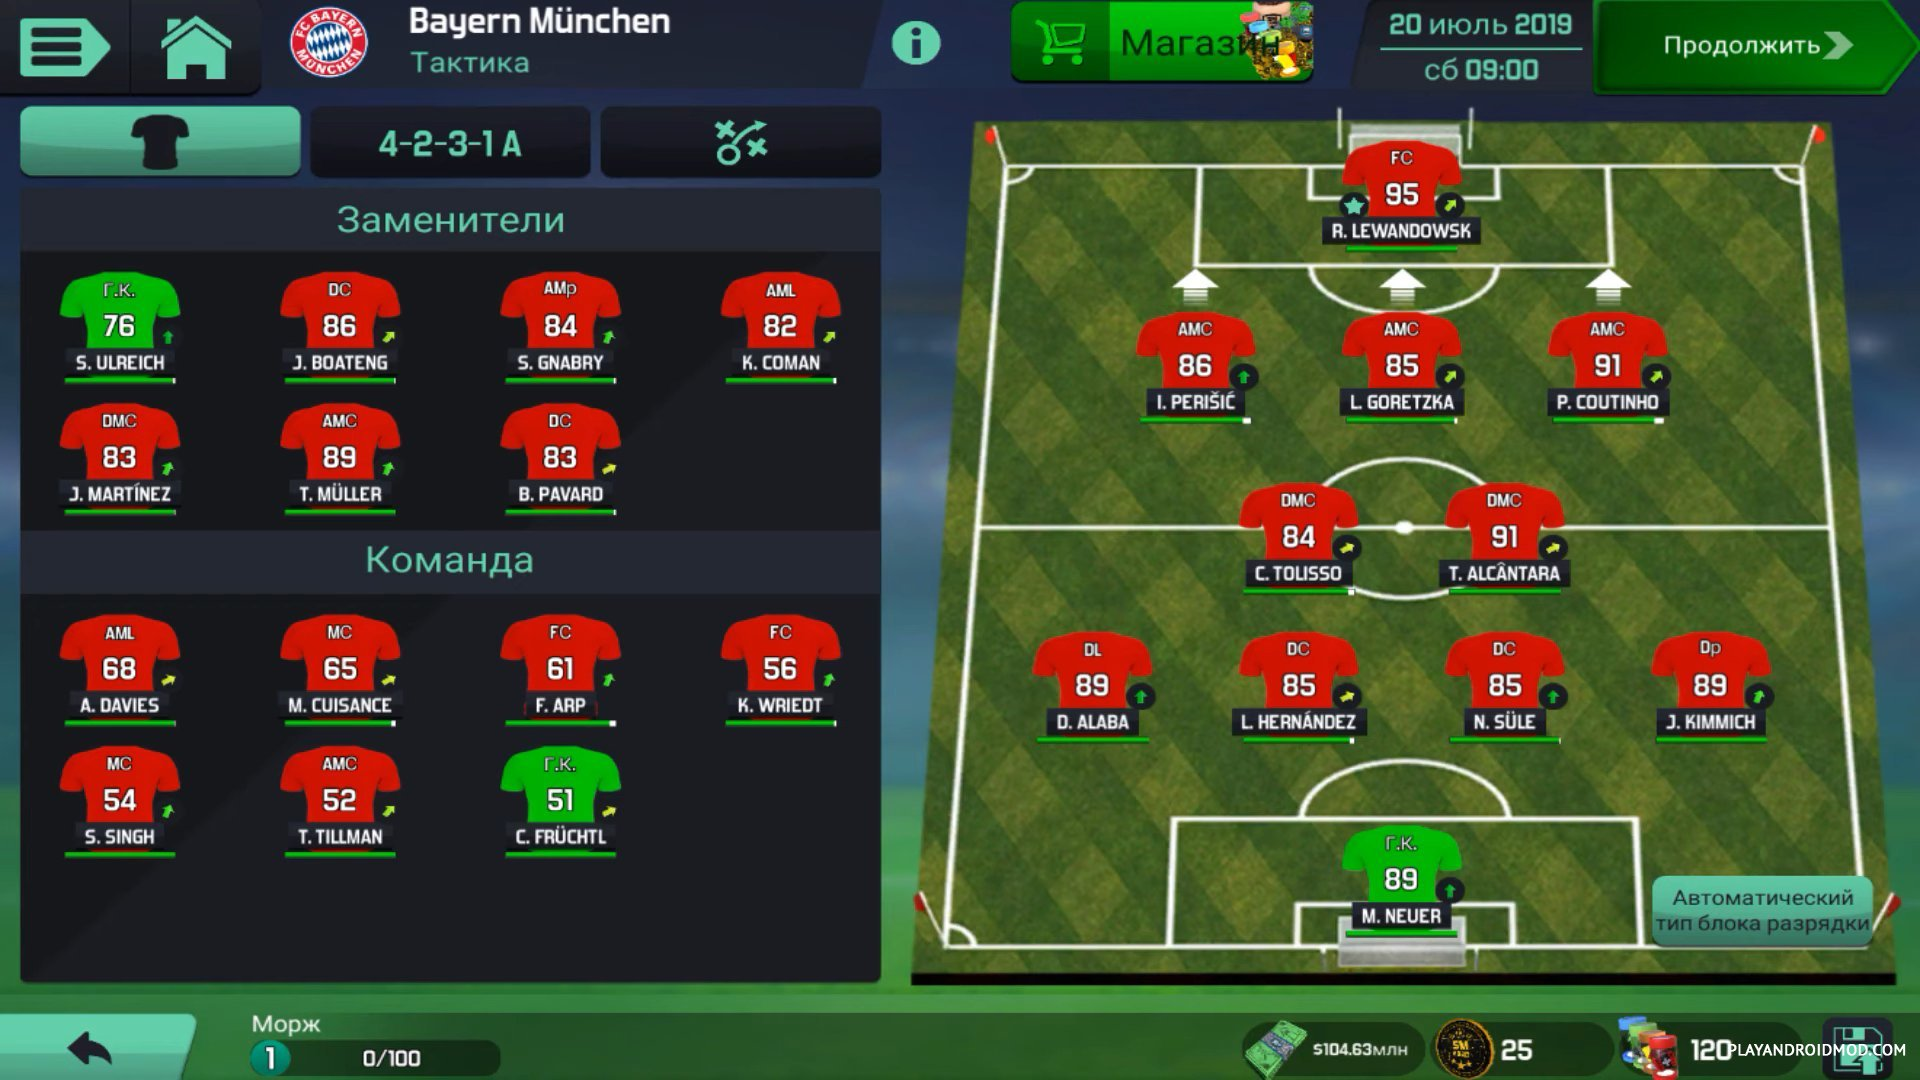 Soccer manager 2020 cheats ios